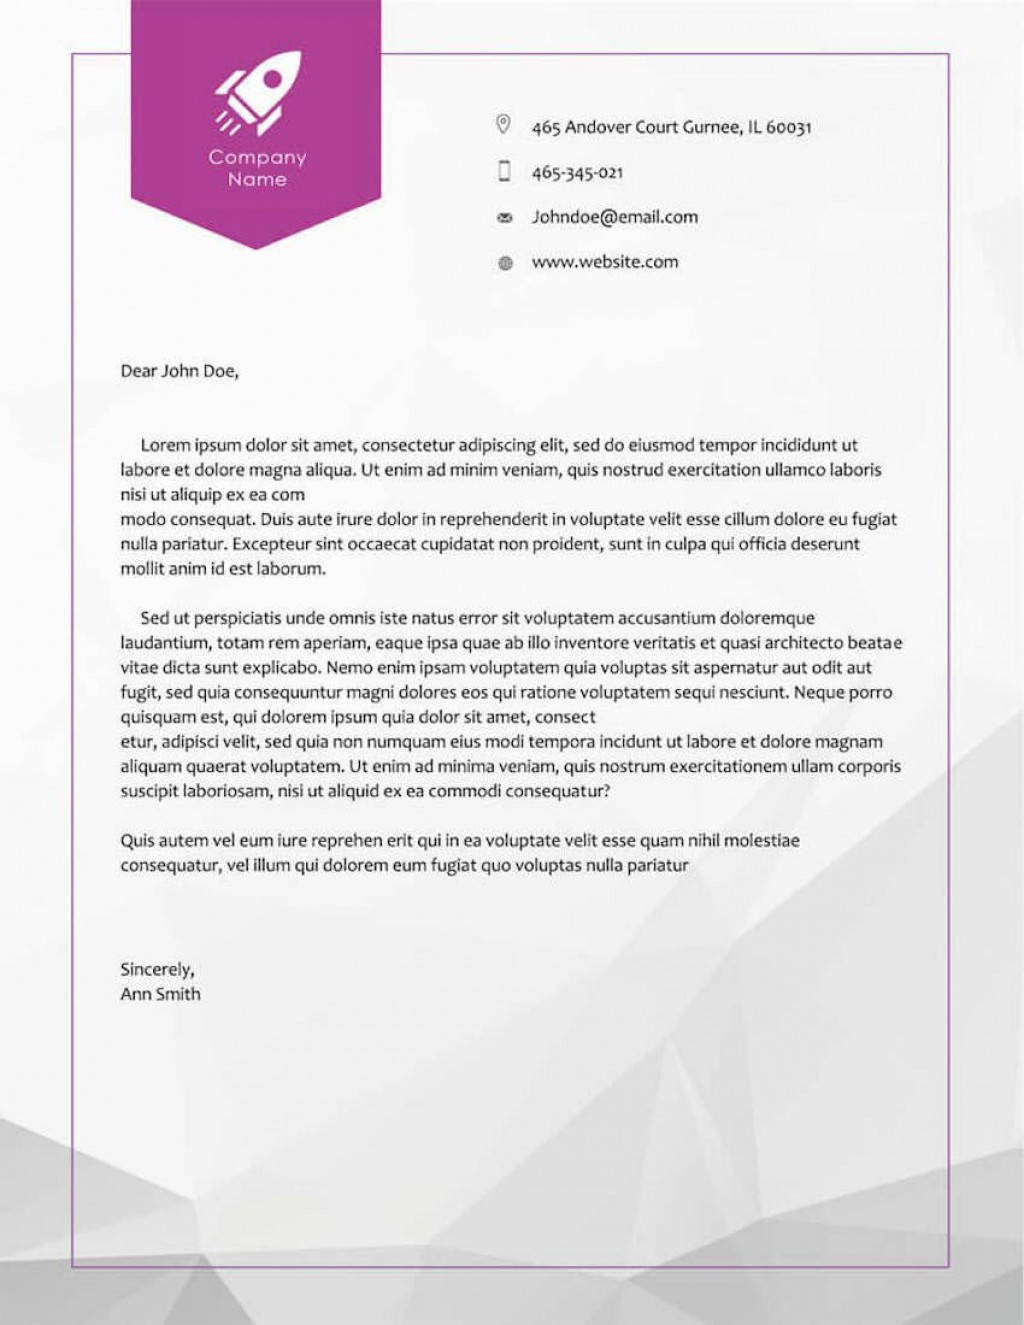 002 Exceptional Letterhead Format In Word 2007 Free Download Picture  Company TemplateLarge